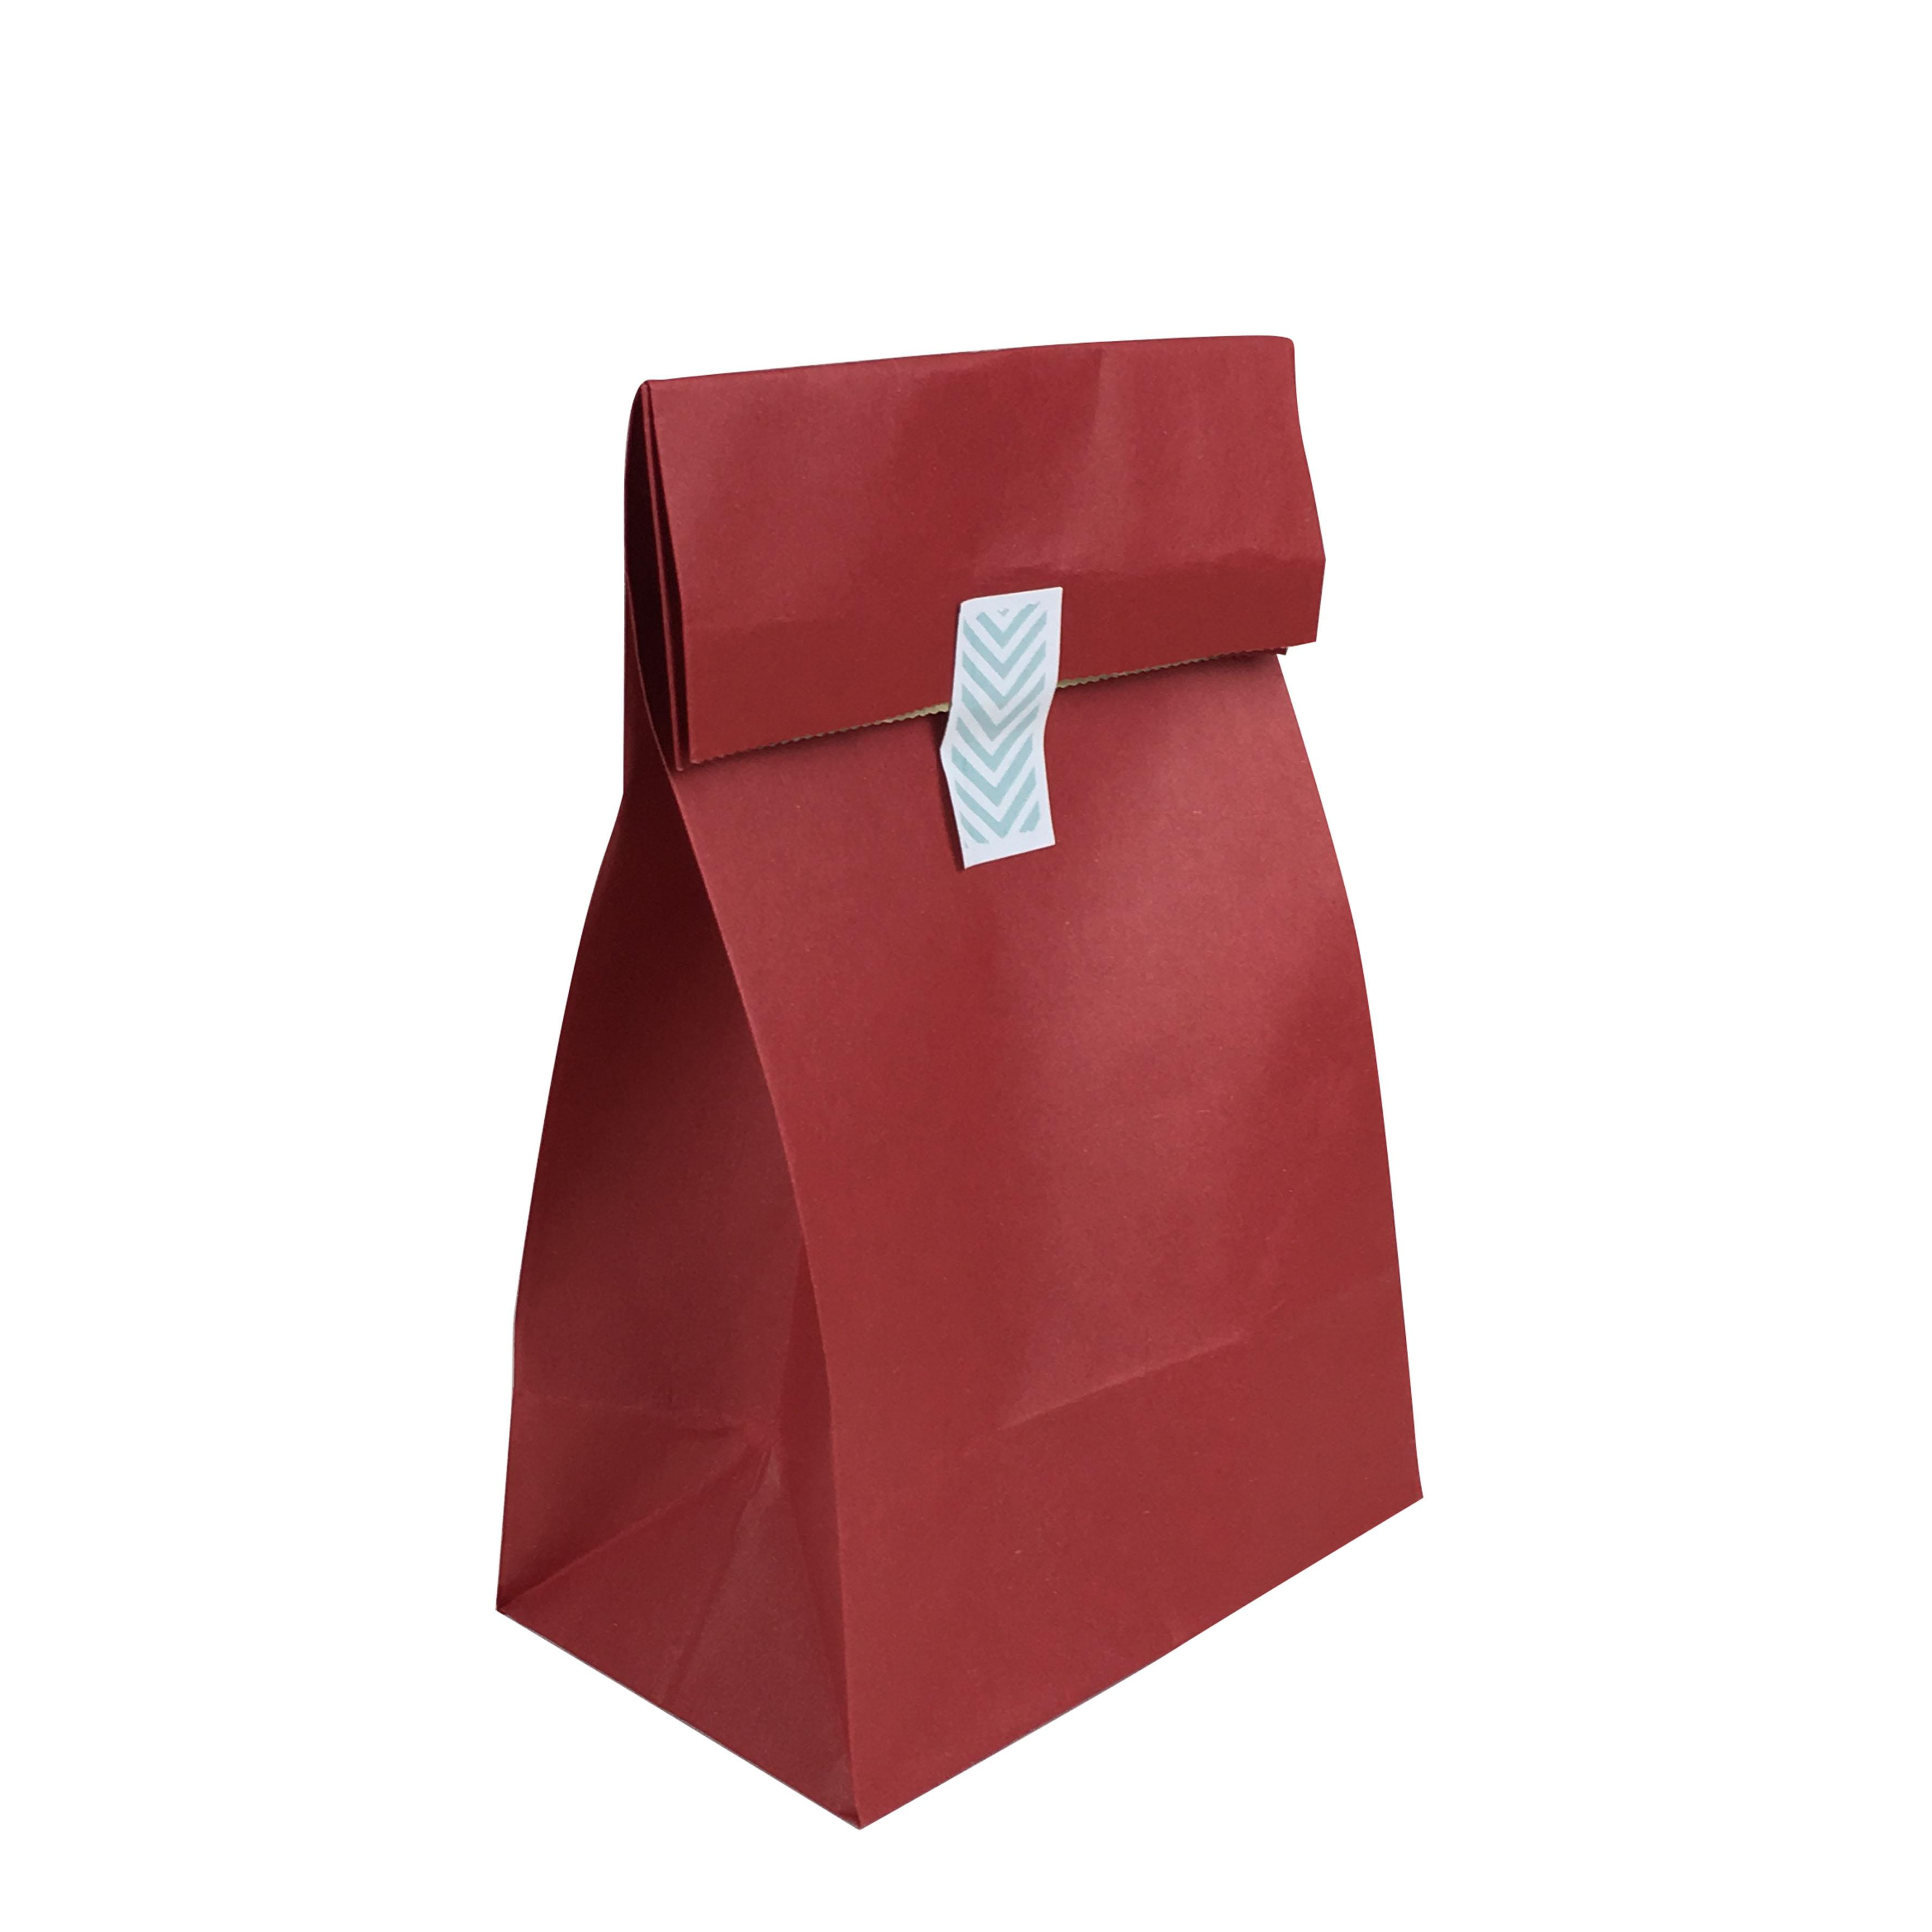 Recyclable sandwich bread food packaging red paper bag